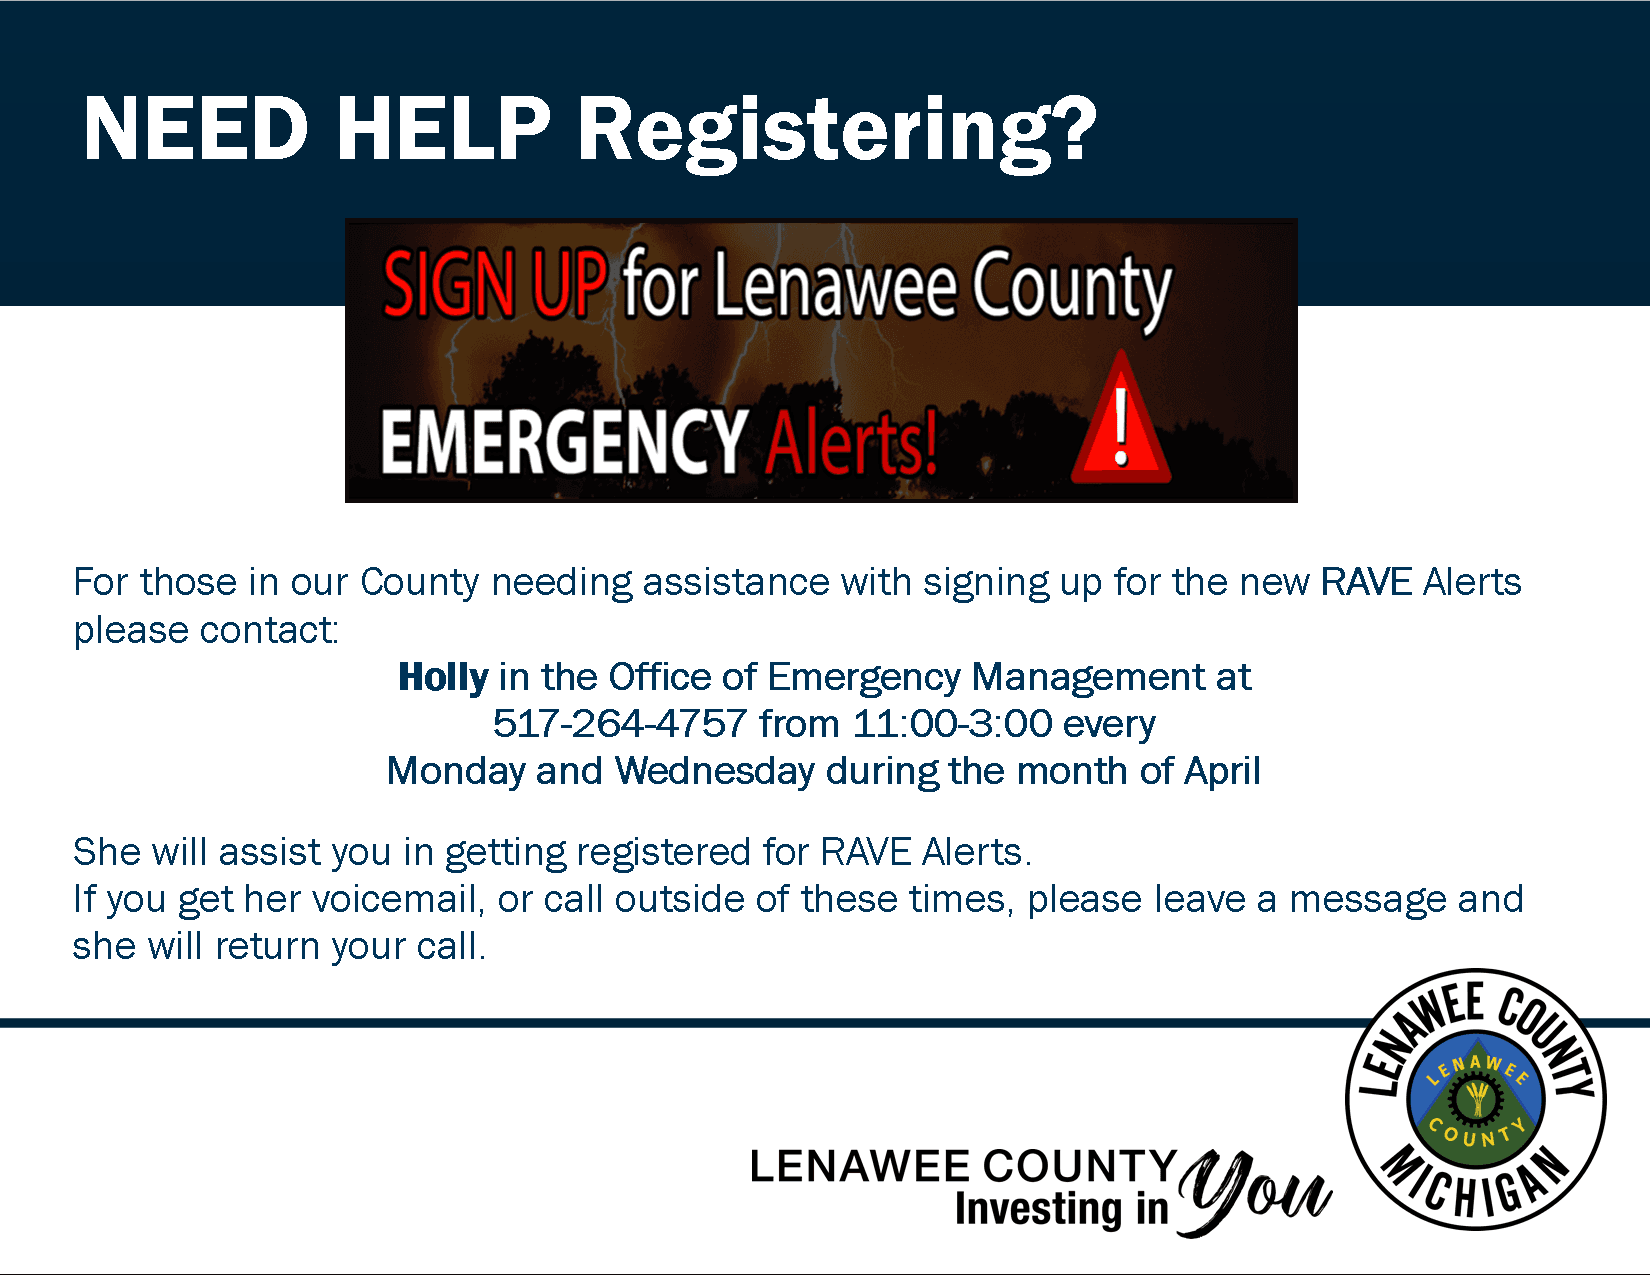 Need Help Registering for RAVE Alerts